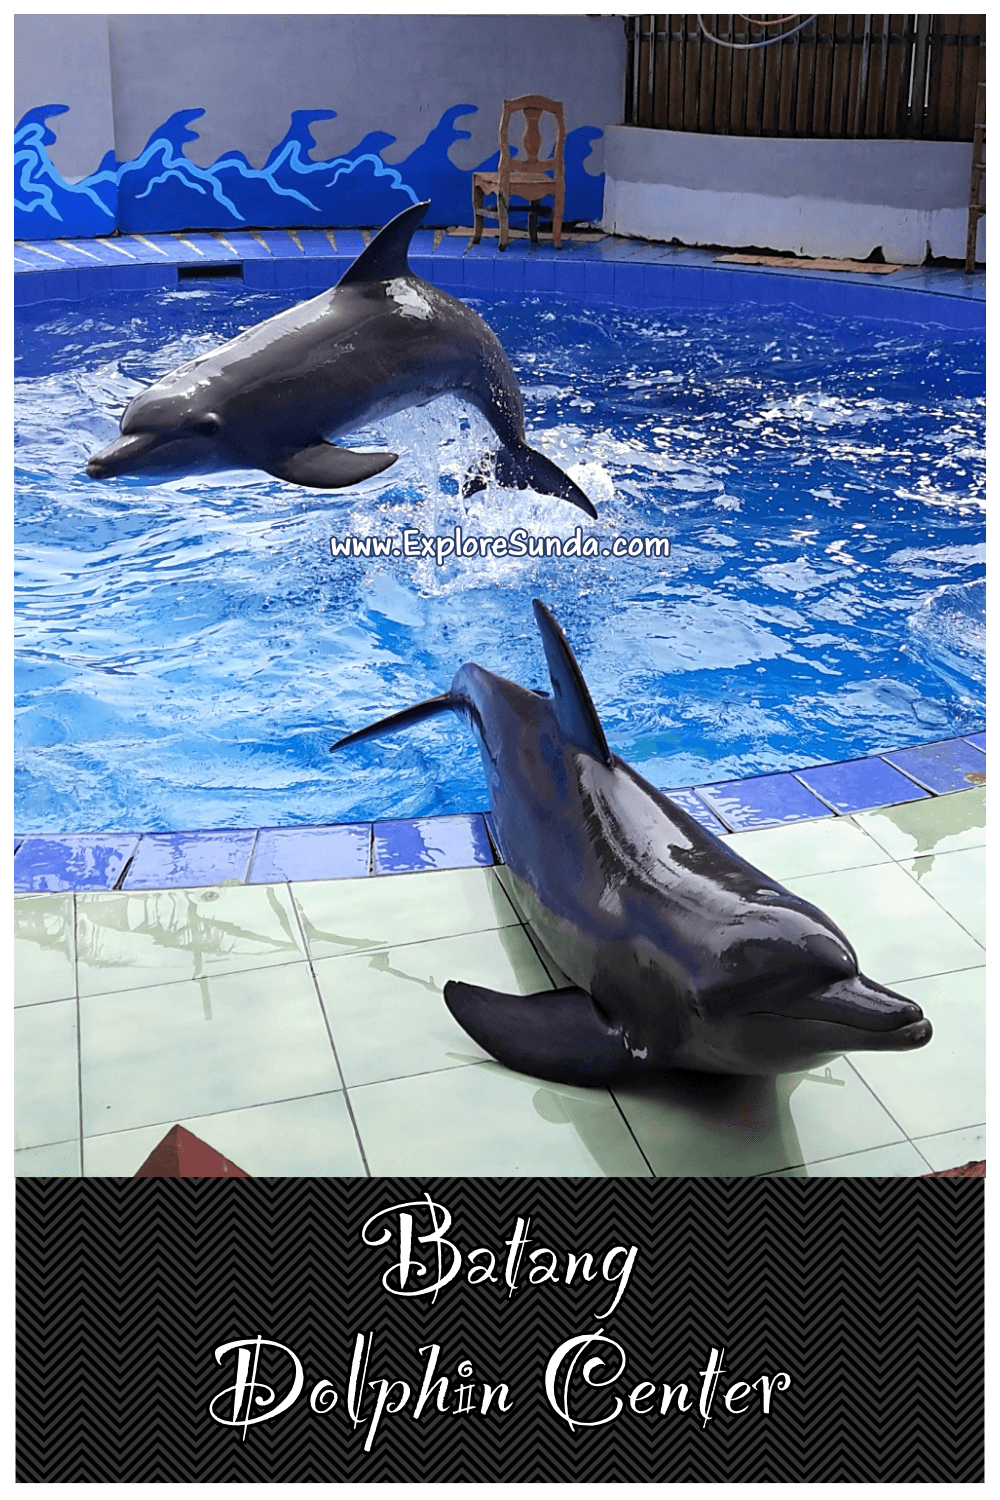 Explore Batang Dolphin Centre | A dolphin conservatory, a branch of Taman Safari Indonesia | Watch the cute dolphins play and perform :) | #ExploreSunda